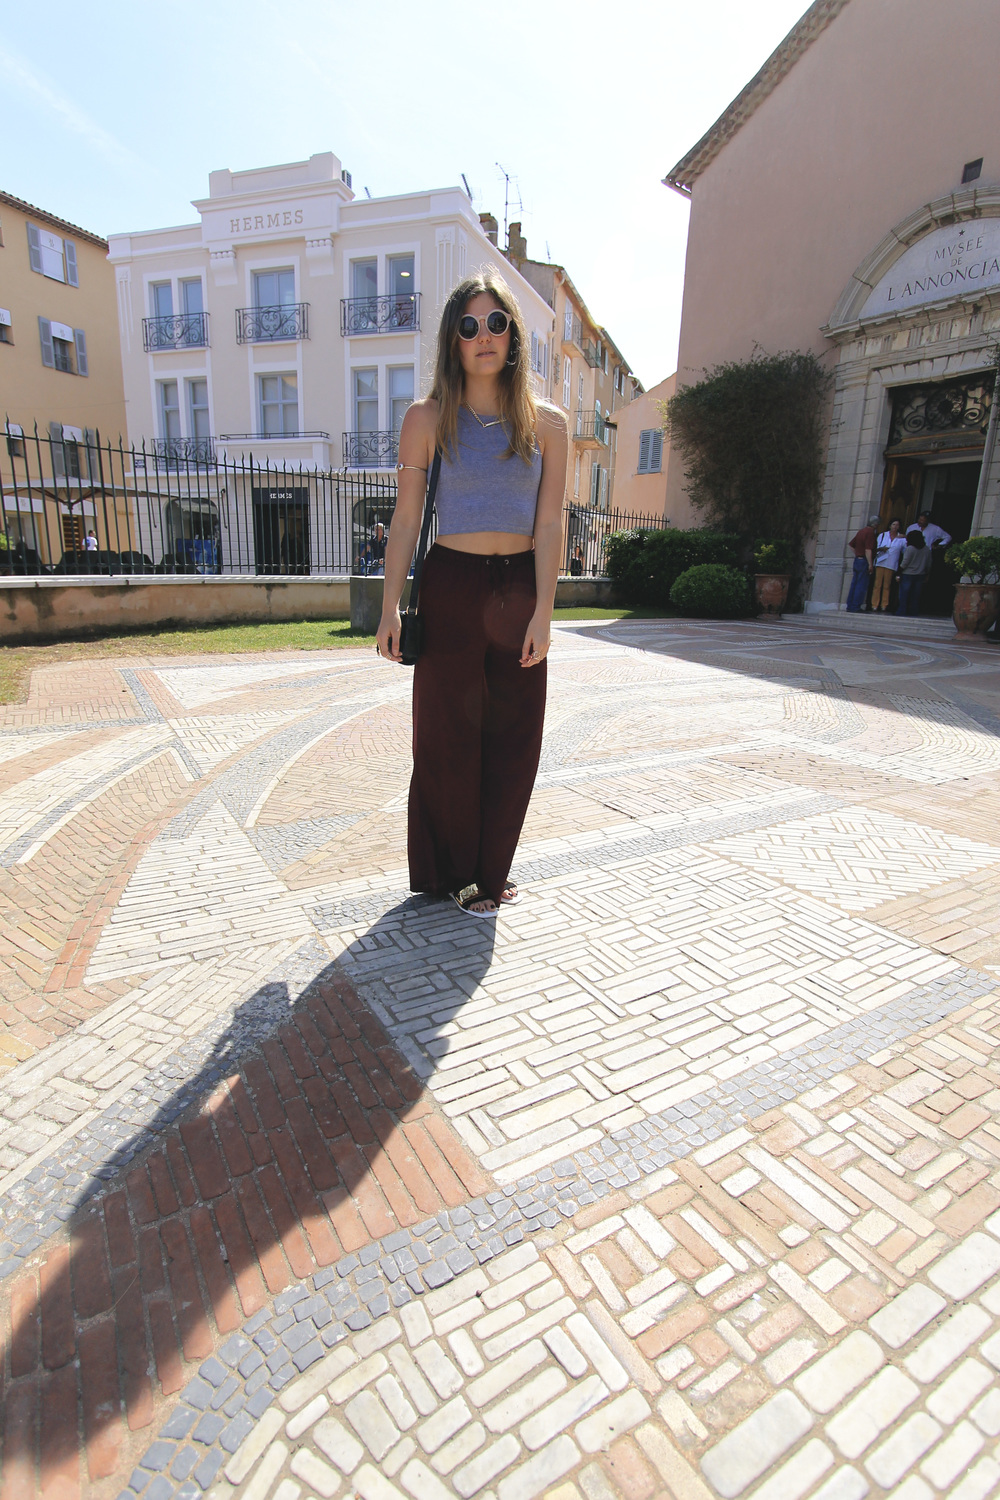 st tropez hermes style street crop top palazzo pants